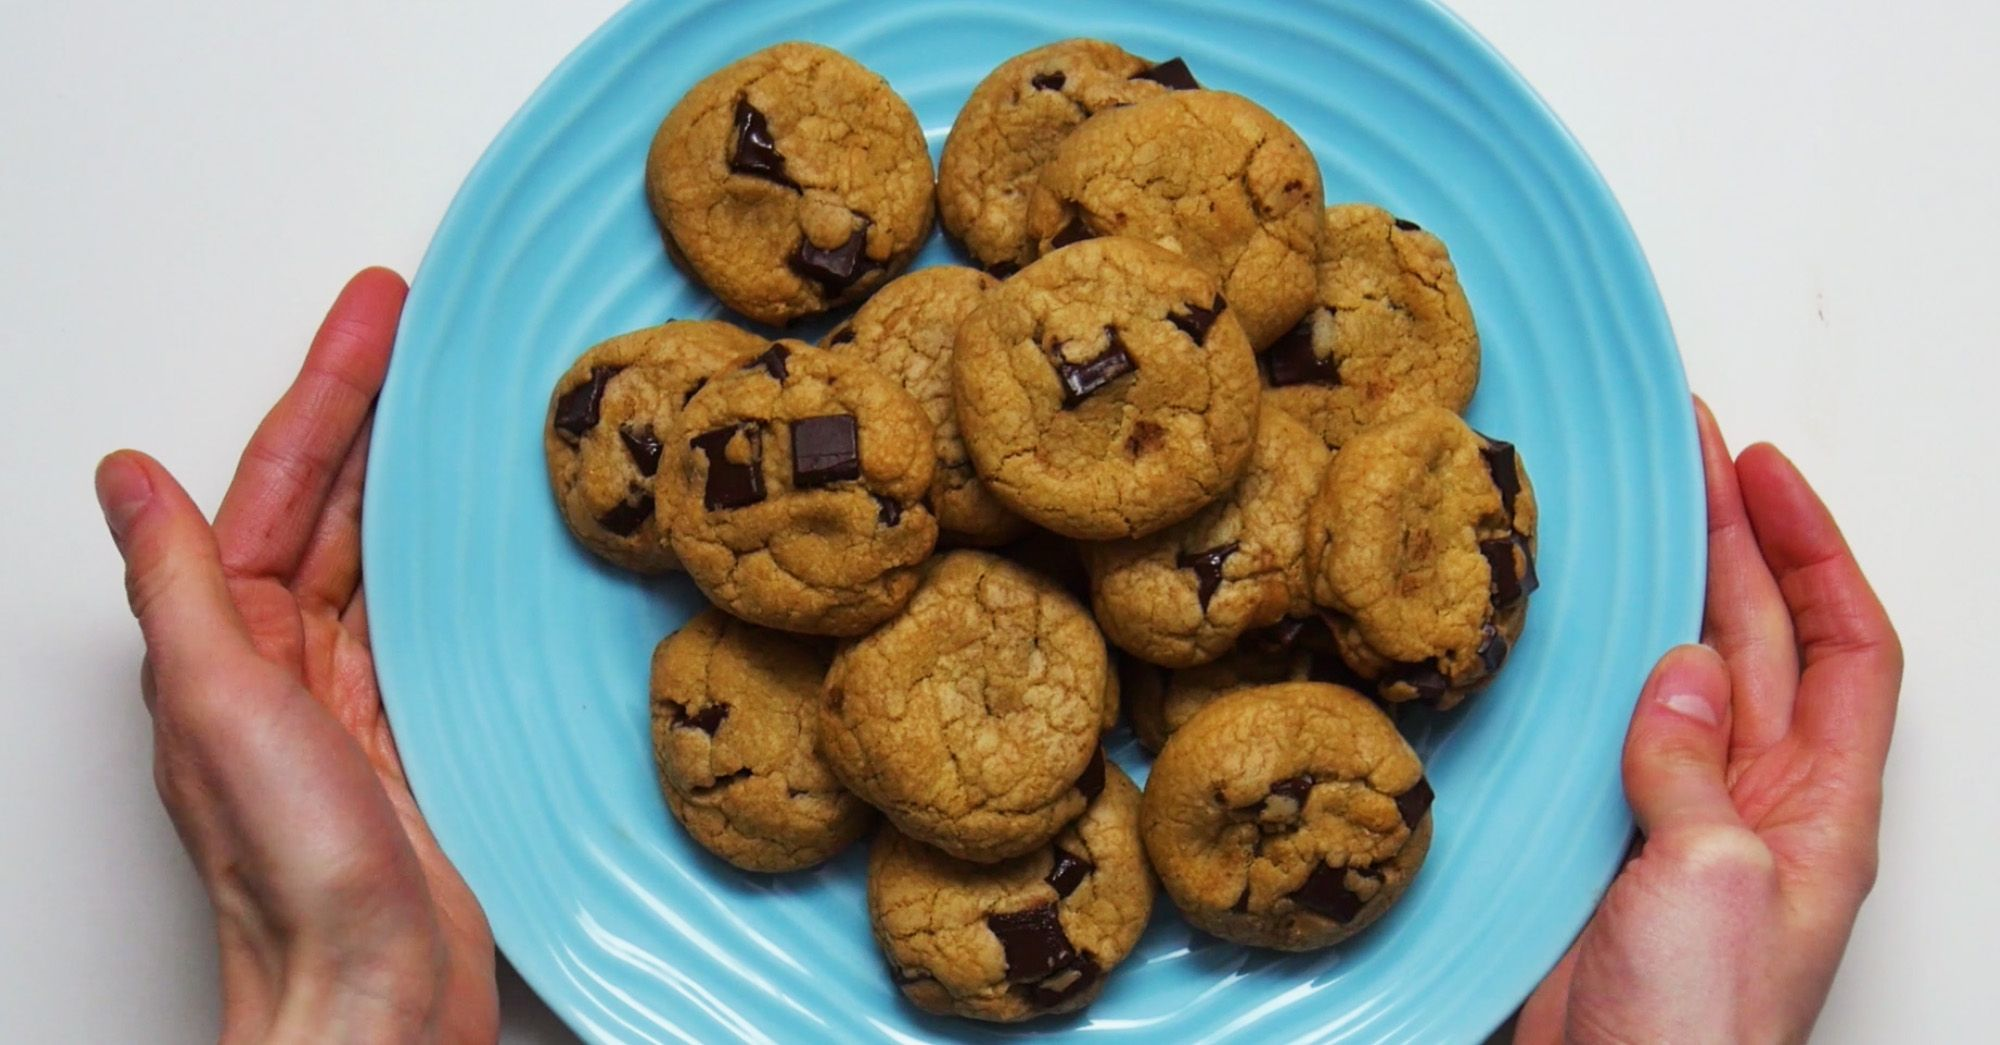 image may contain perfectly chewy chocolate chip cookies on a blue plate